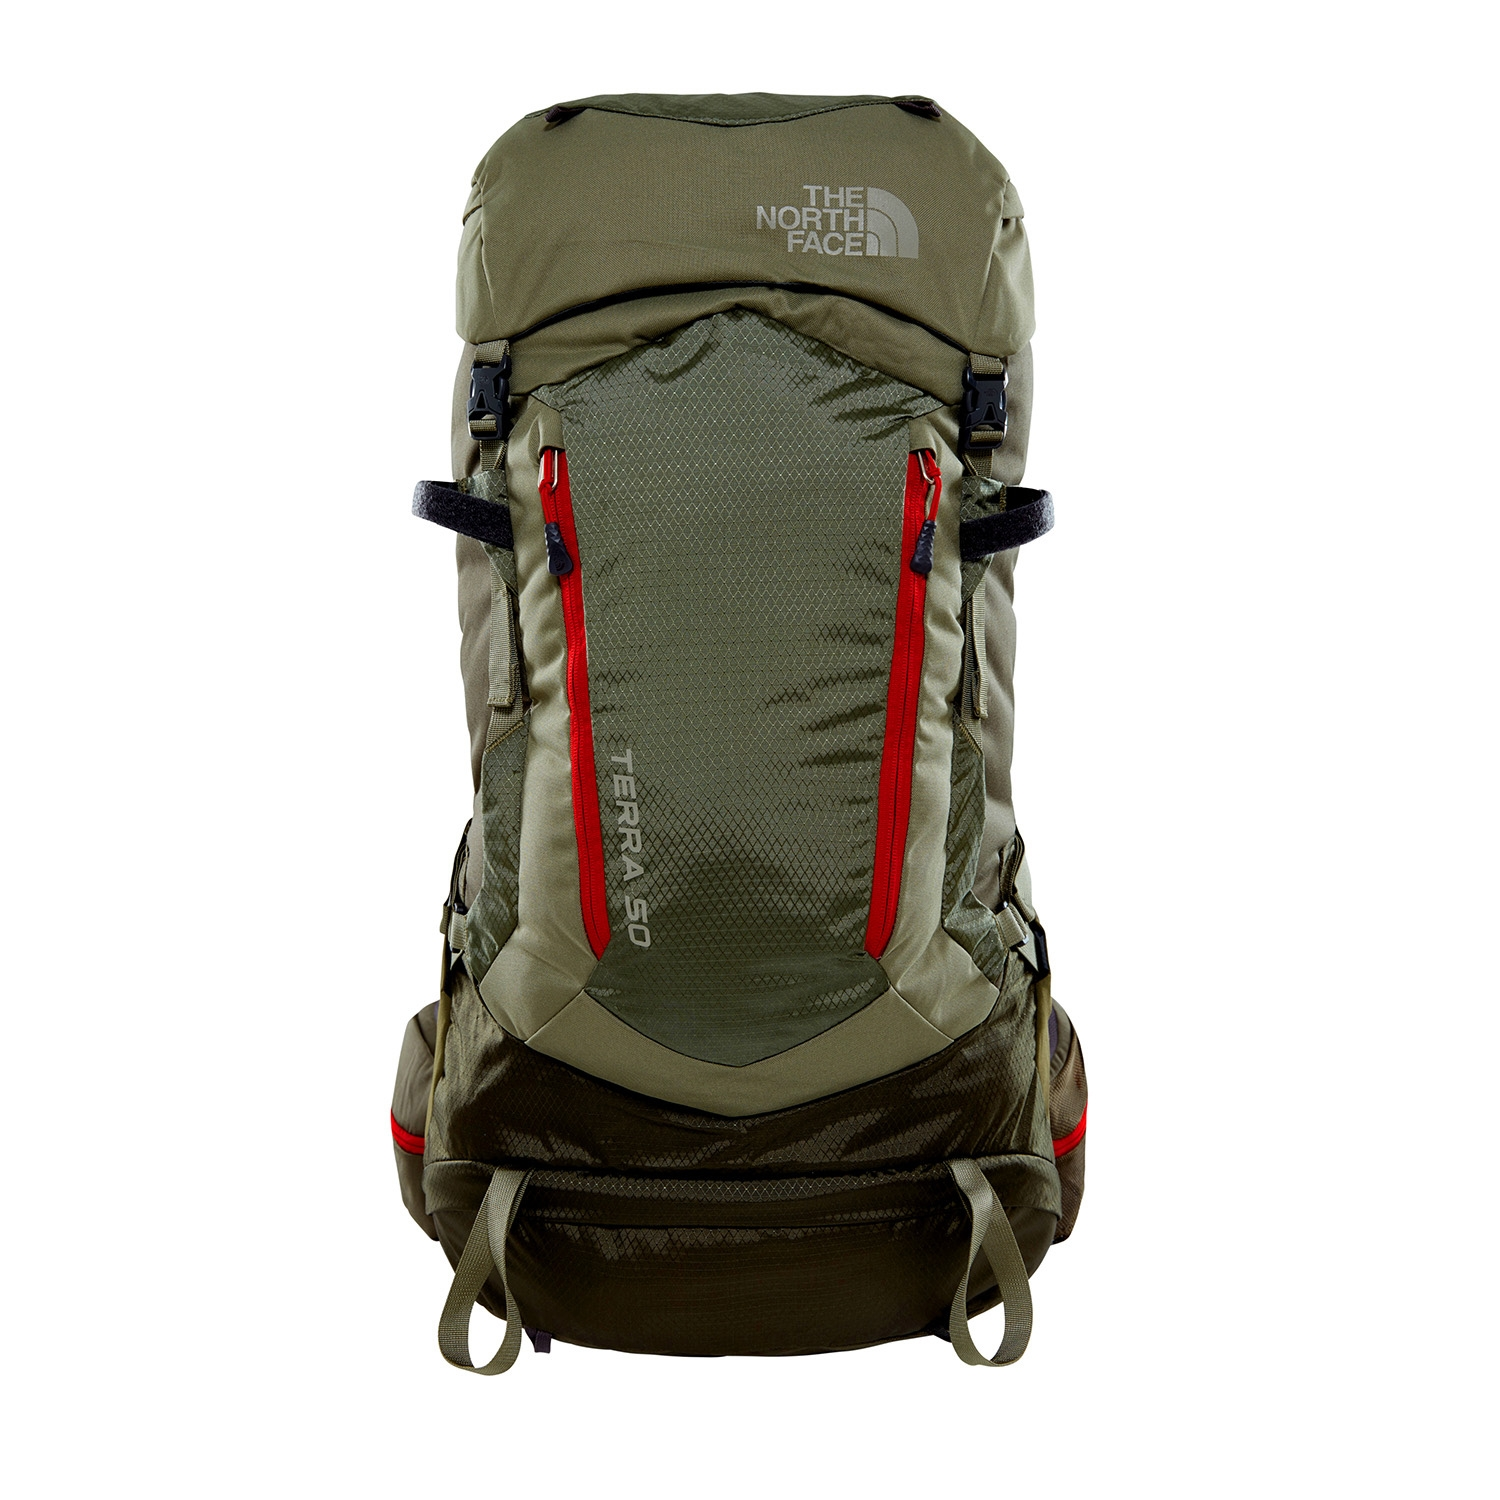 3e33ce8d36 Sac de randonnée The North Face Terra 50 | Alltricks.com